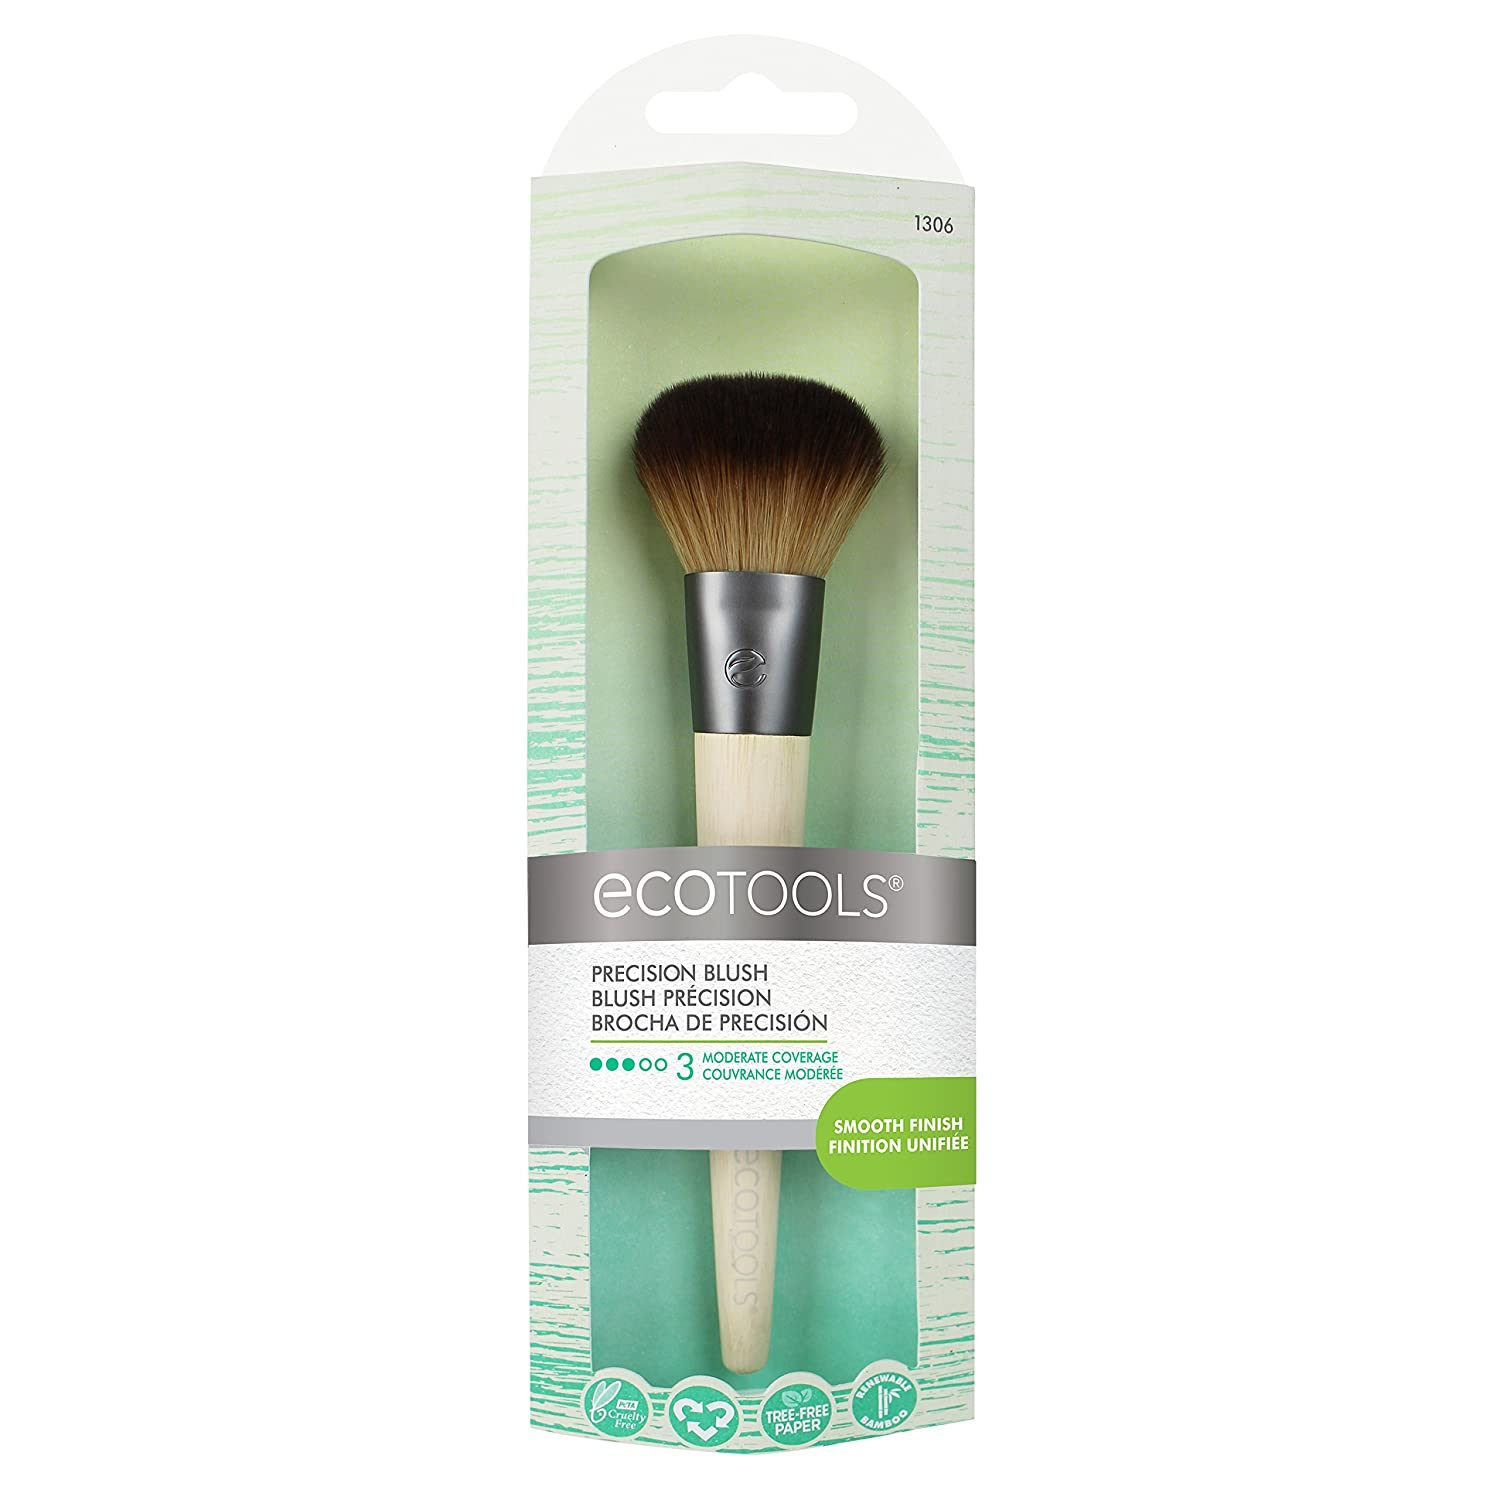 EcoTools Blending and Bronzing Make-up Brush Paris Presents Incorporated EC1305